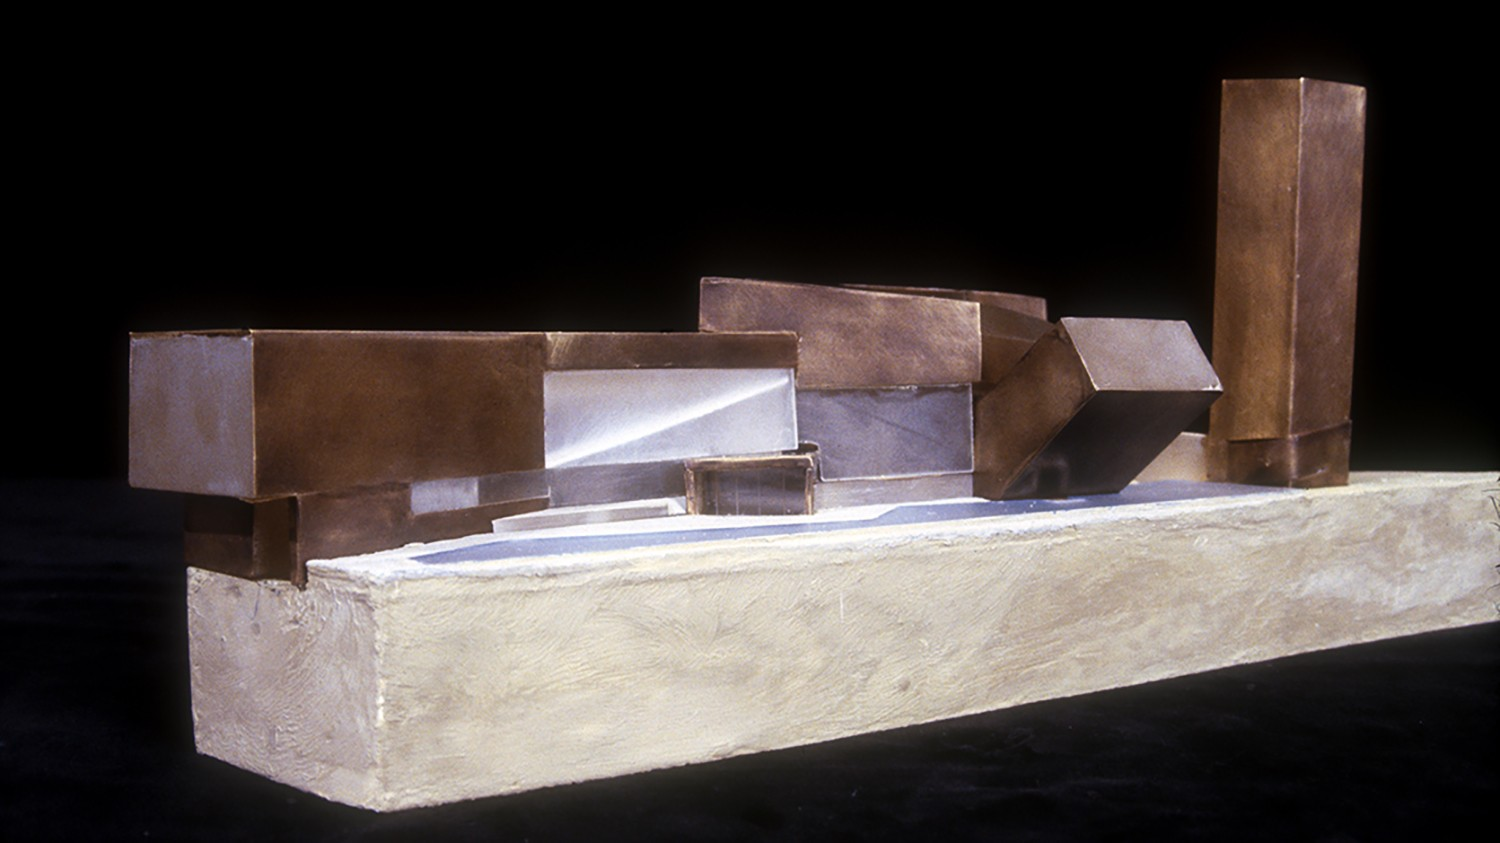 https://stevenholl.sfo2.digitaloceanspaces.com/uploads/projects/project-images/StevenHollArchitects_Confluence_lyon_model_WH.jpg